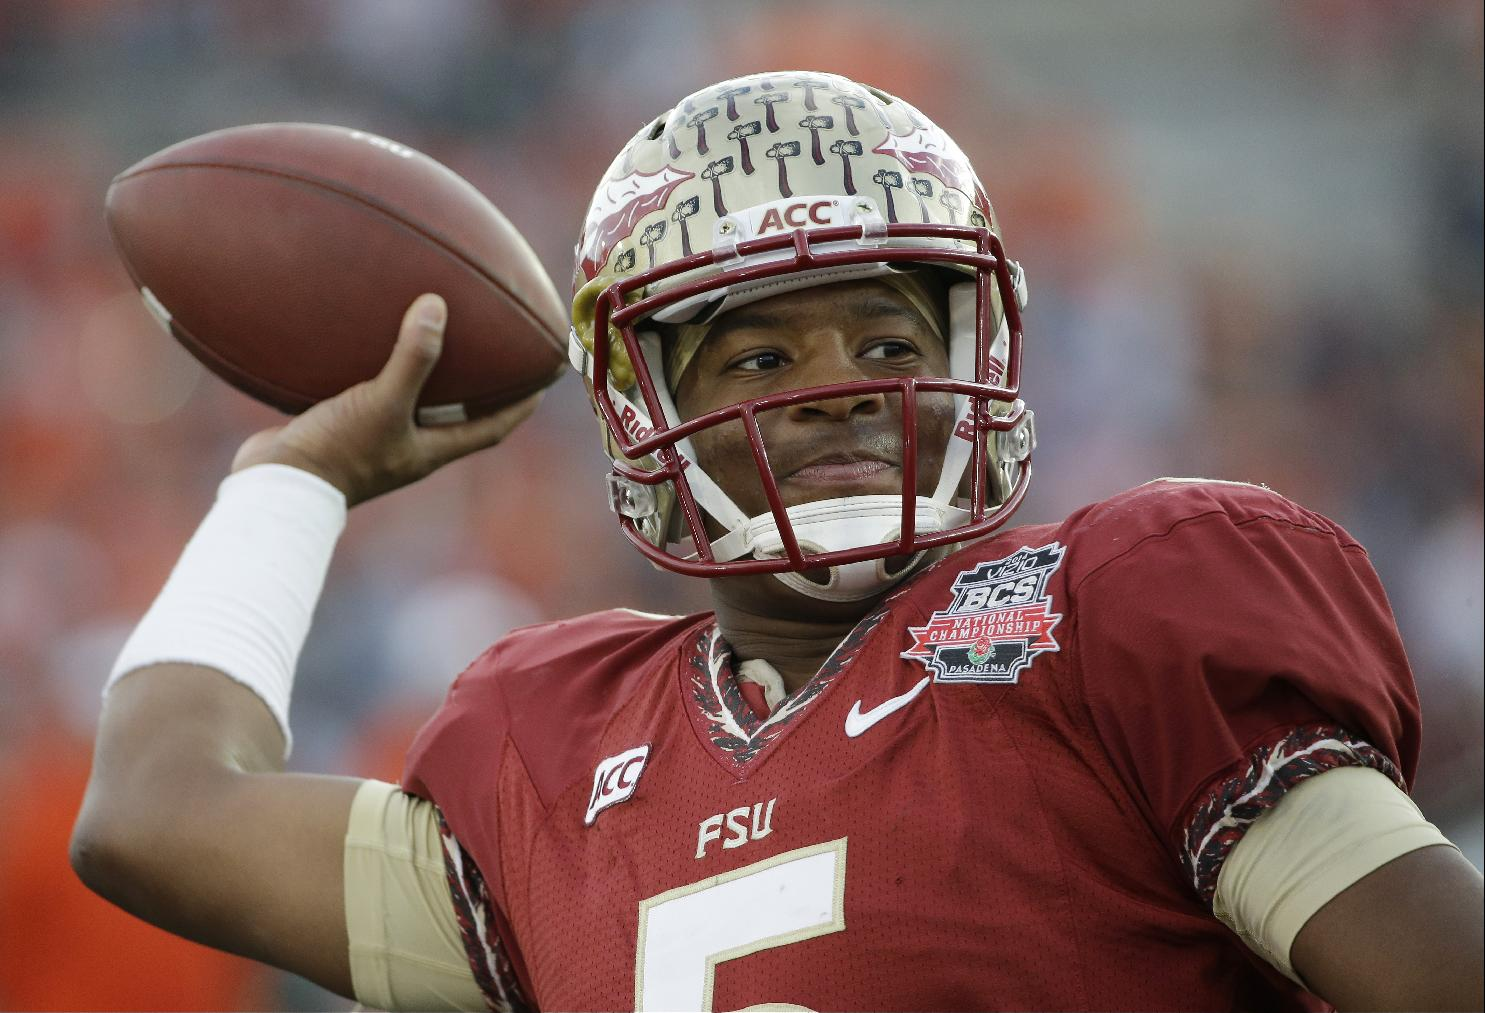 This Jan. 6, 2014 file photo shows Florida State quarterback Jameis Winston warming up before the NCAA BCS National Championship college football game against Auburn in Pasadena, Calif. The attorney for a woman who accused Winston of sexual assault says she will sue the school, the Tallahassee Police Department and the player himself, Thursday, Jan. 9, 2014